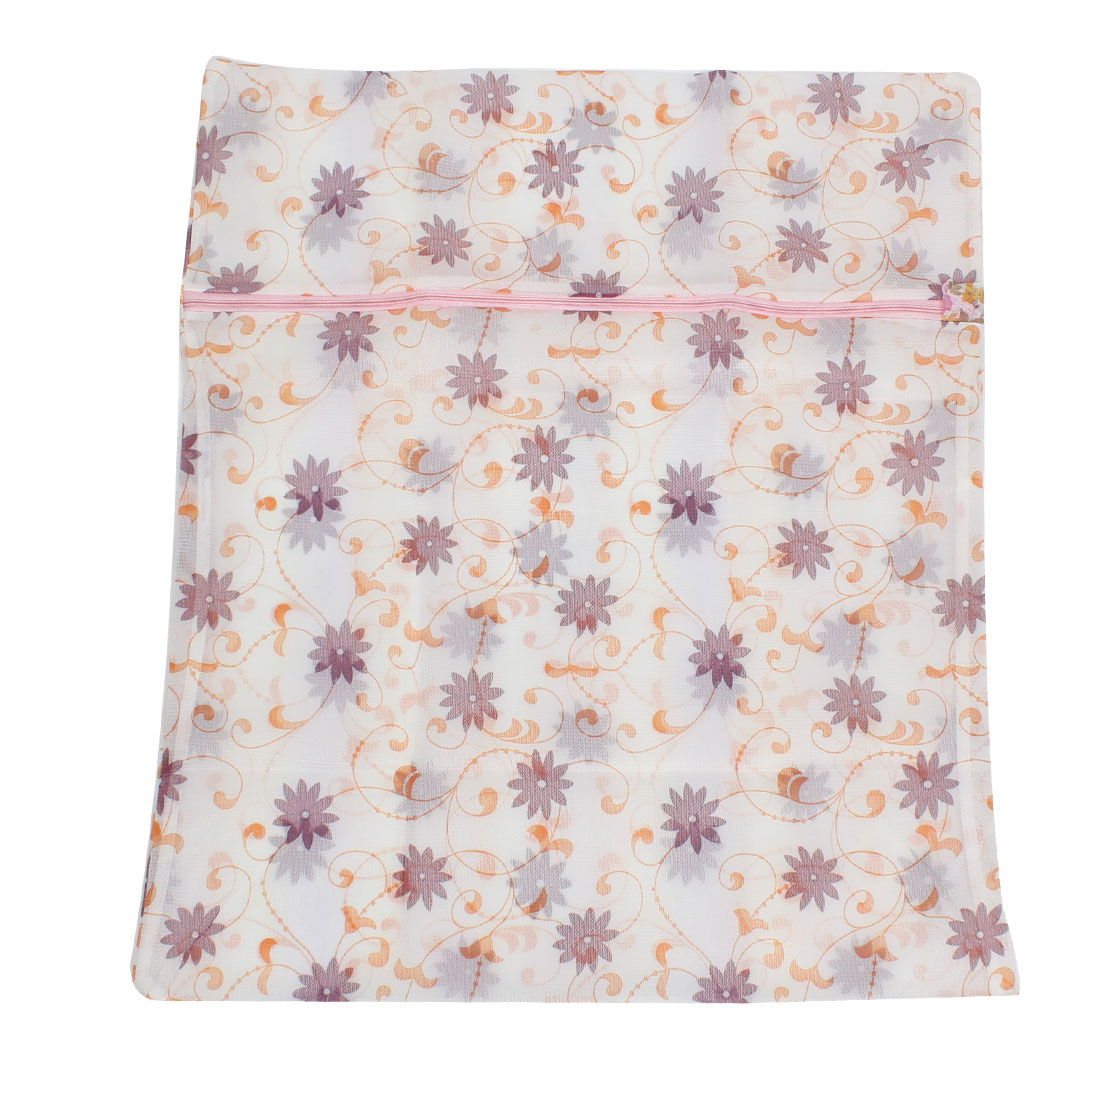 Zippered Closure Flower Print Nylon Mesh Clothes Wash Washing Bag 58cm x 48cm